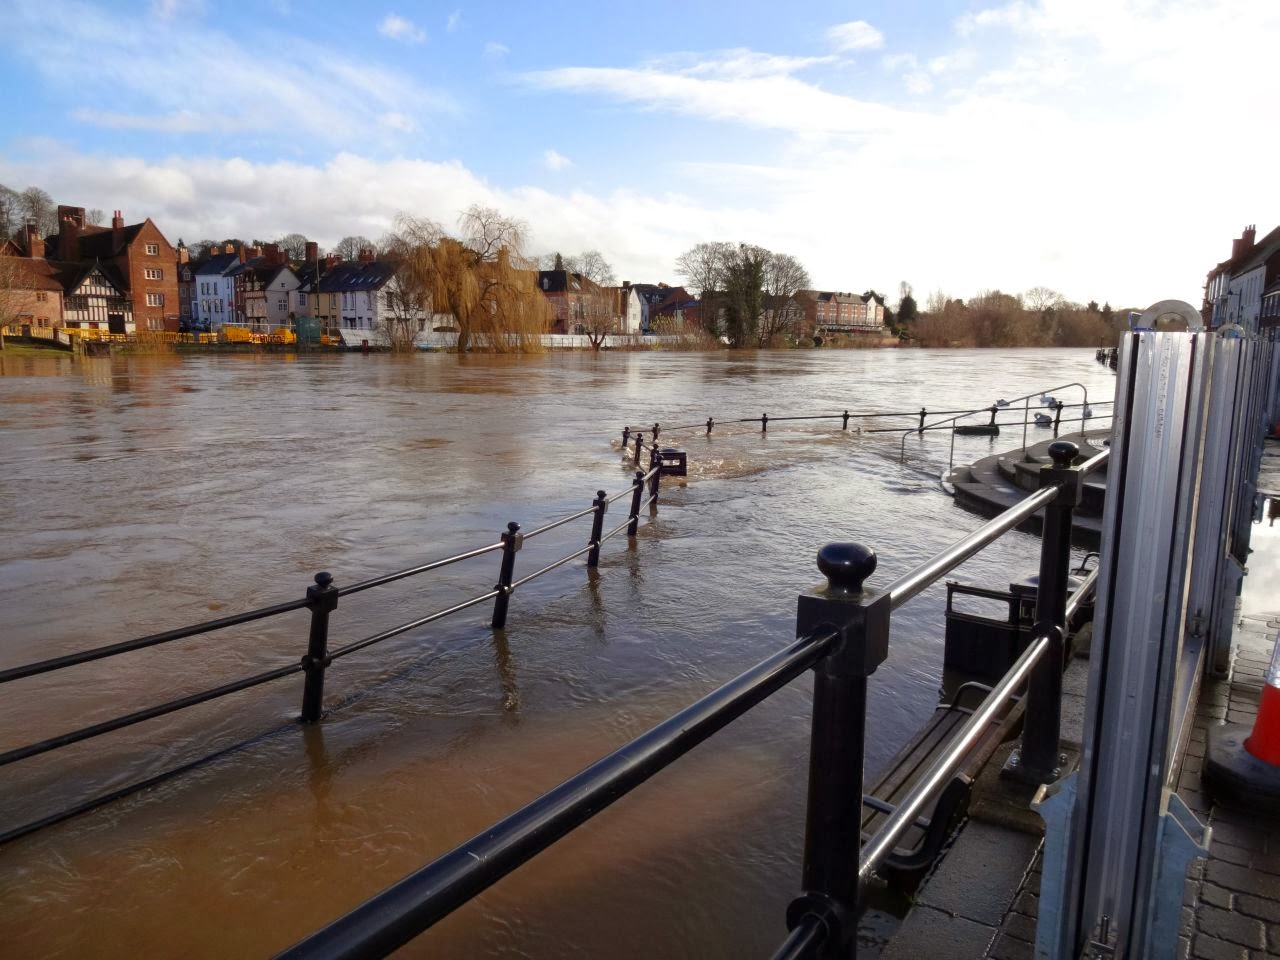 The floods in Bewdley